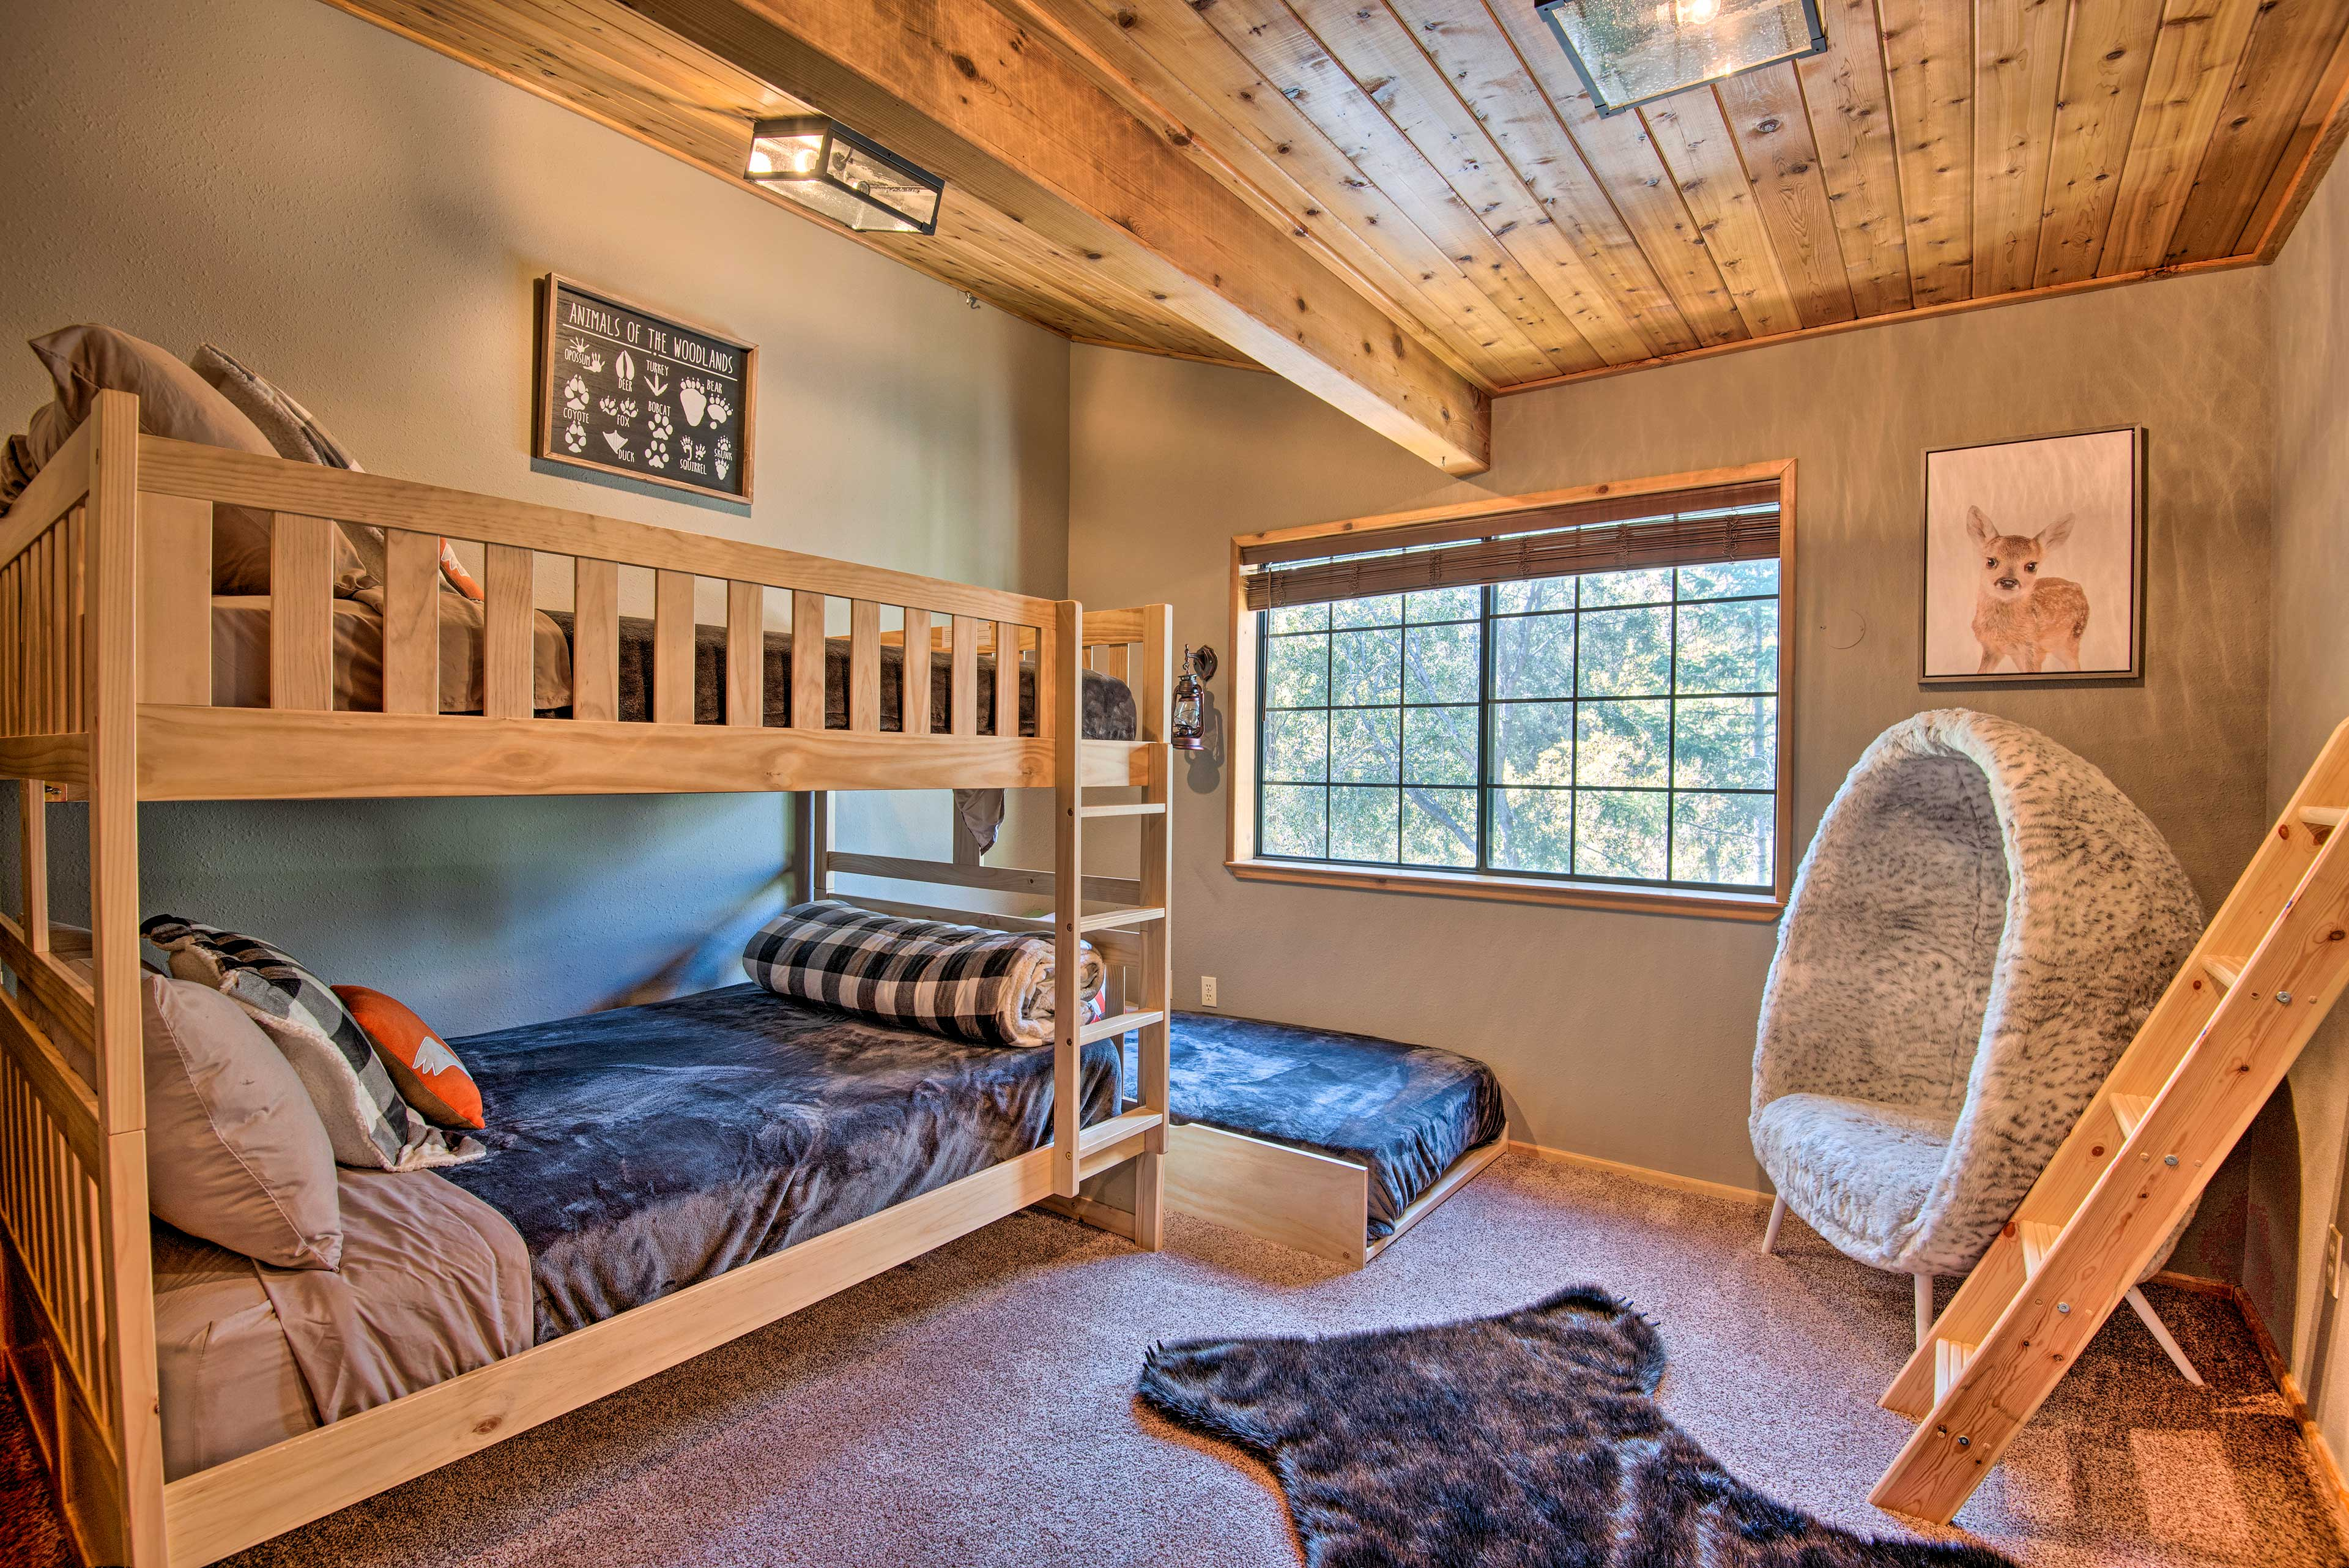 The second bedroom features 2 full bunk beds and a twin bed.